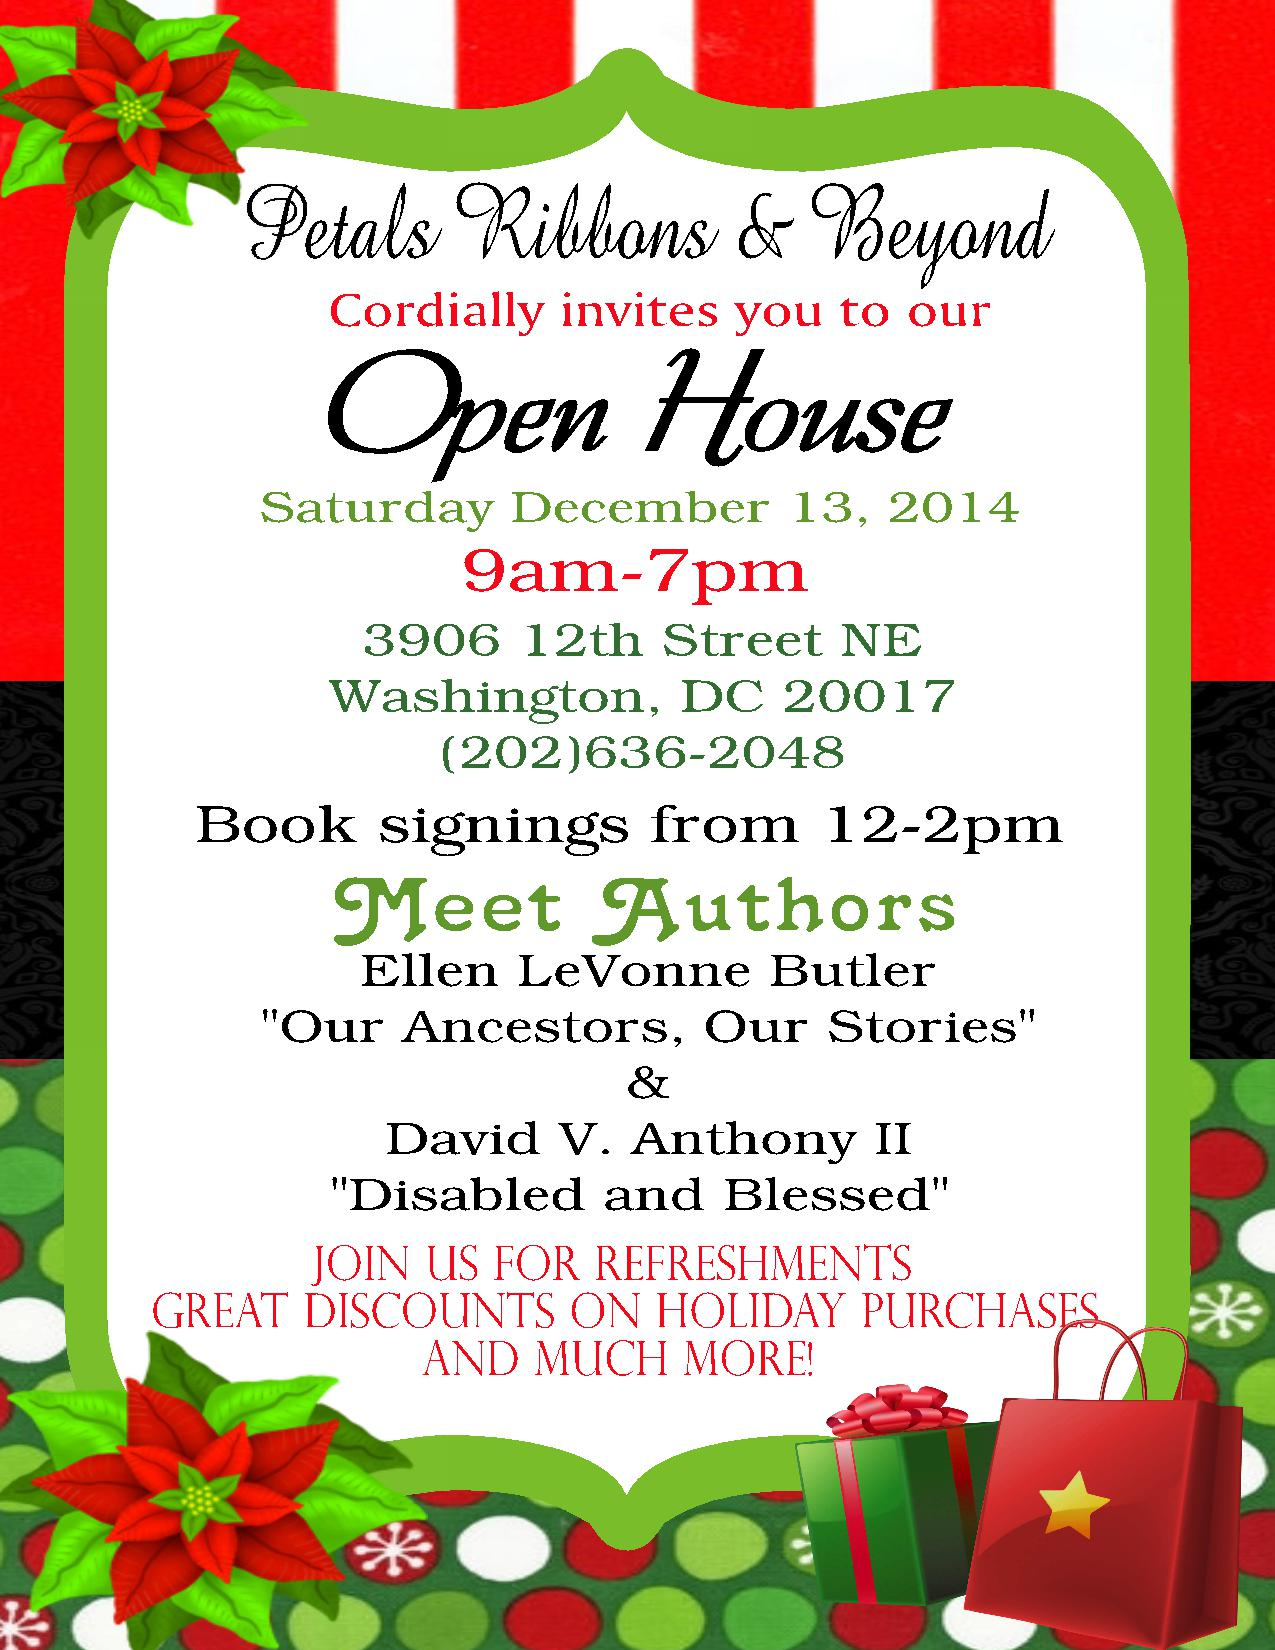 Petals Ribbons & Beyond Invites To Open House On Saturday Dec 13